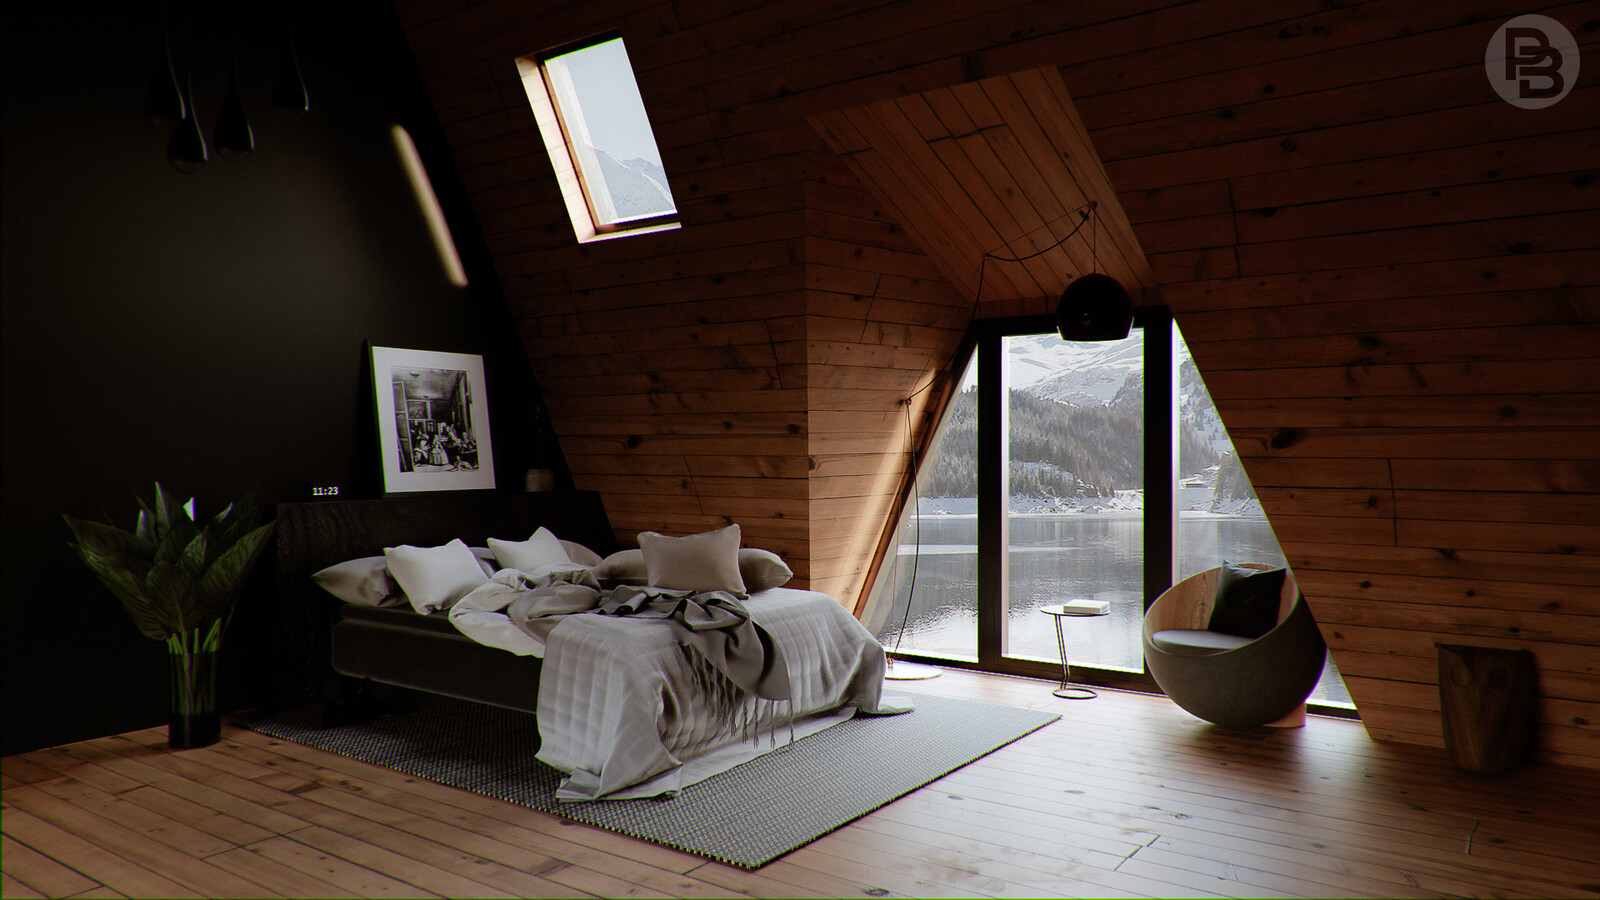 Realistic bedroom in wintery landscape